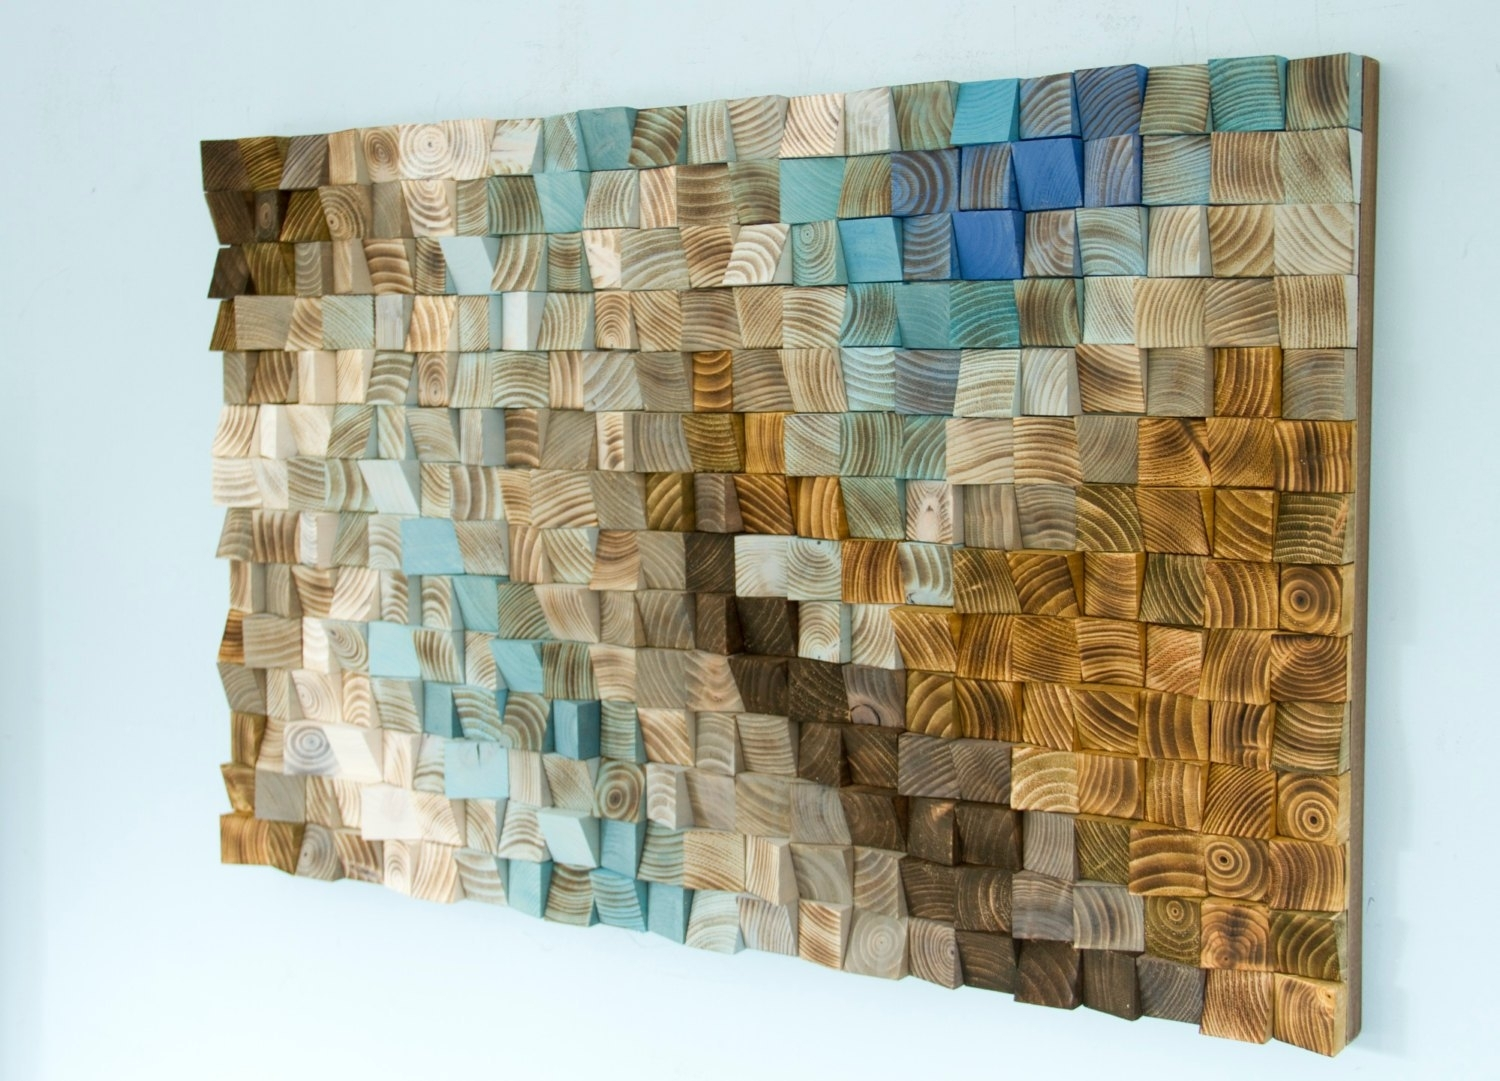 Wood Wall Art Mosaic, Office Wall Decor, Geometric Art, 24, Fabric Within Newest Mosaic Wall Art (View 15 of 15)